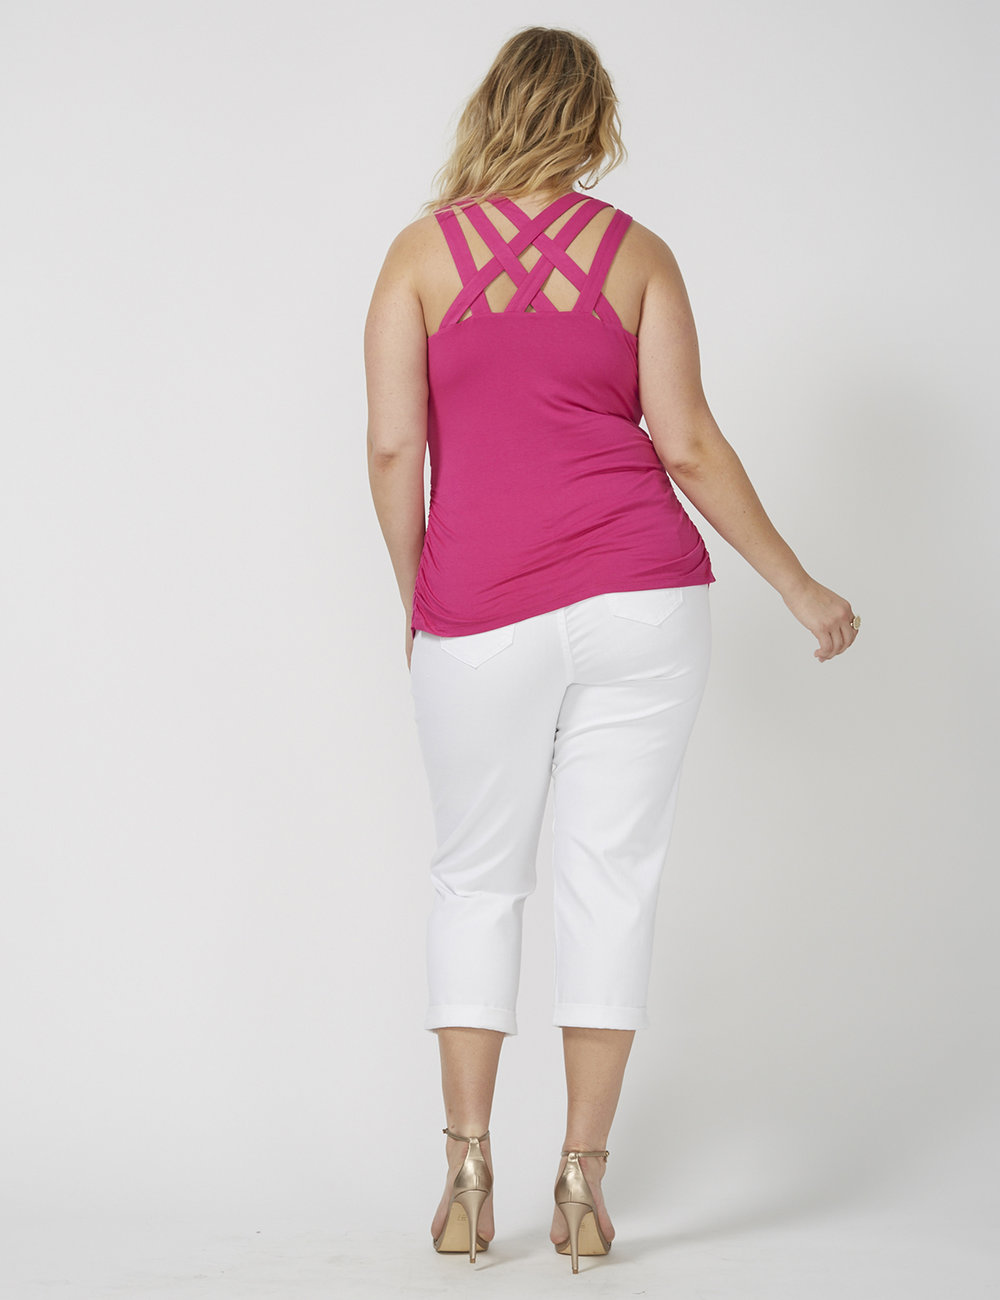 back of fashion model wearing pink tank top and white capris for ecommerce site